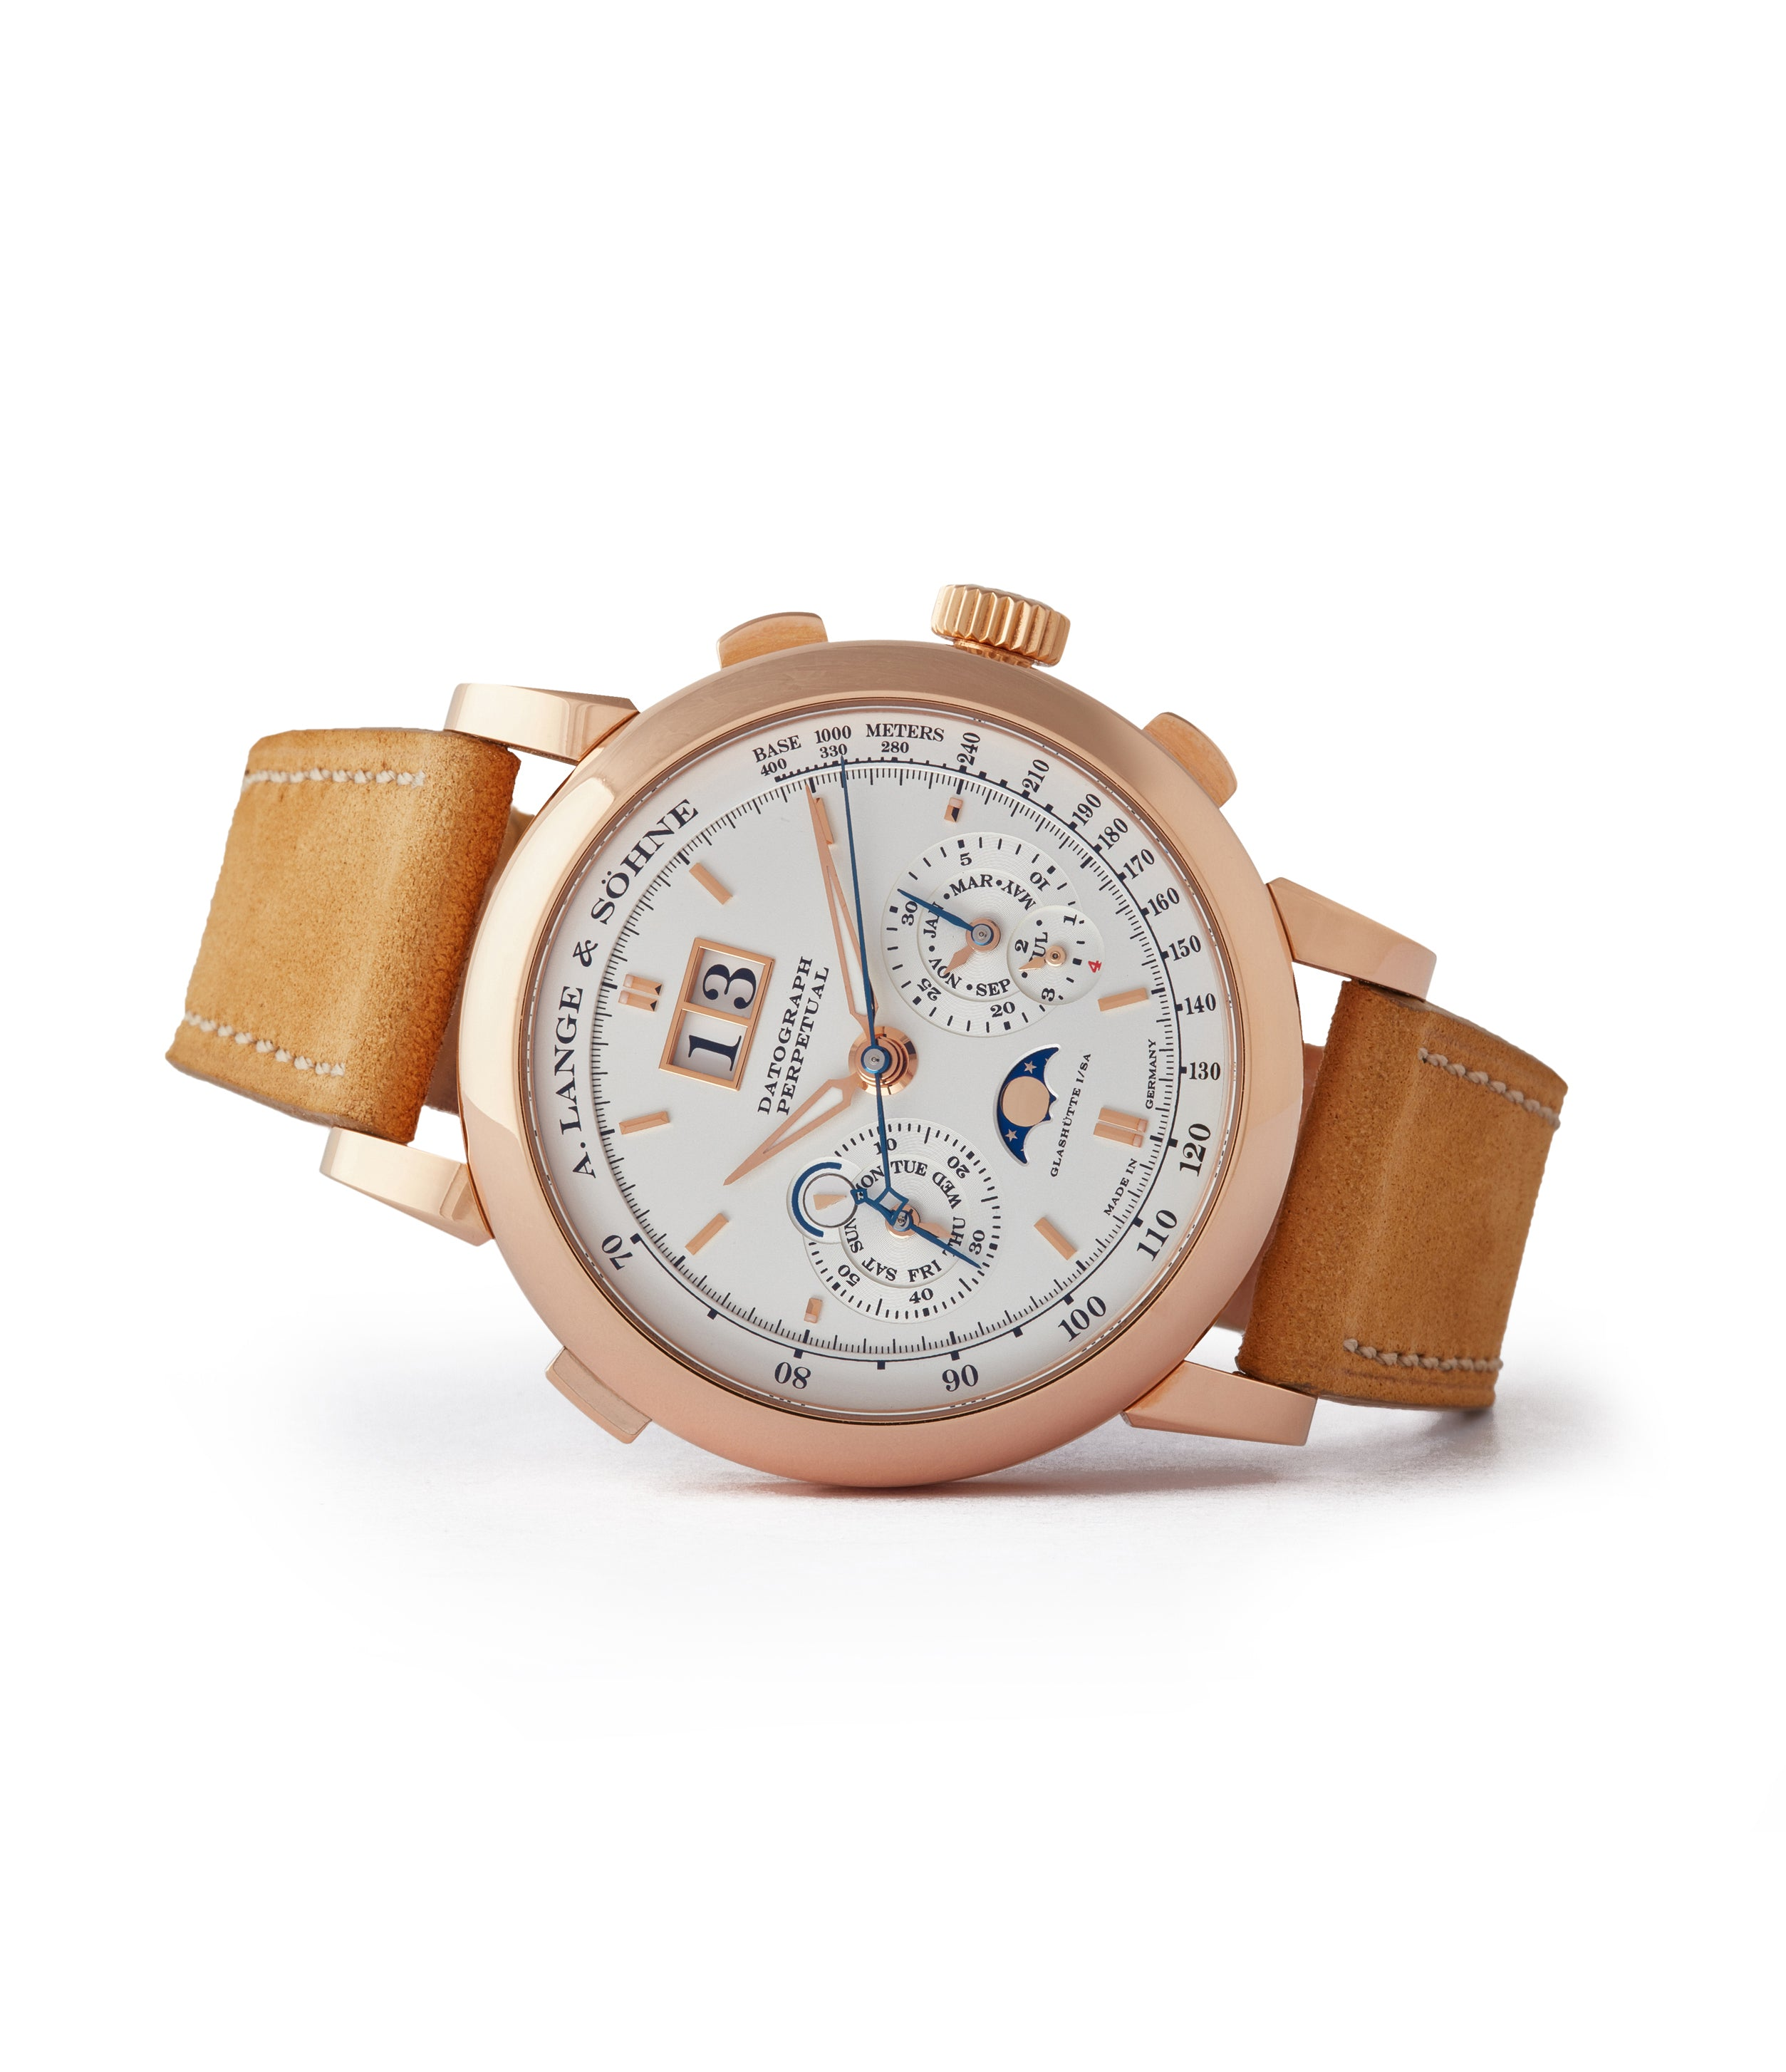 side-shot men's luxury dress watch A. Lange&Sohne Datograph Perpetual Calendar 410.032 pink gold pre-owned dress watch for sale online at A Collected Man London seller rare watches